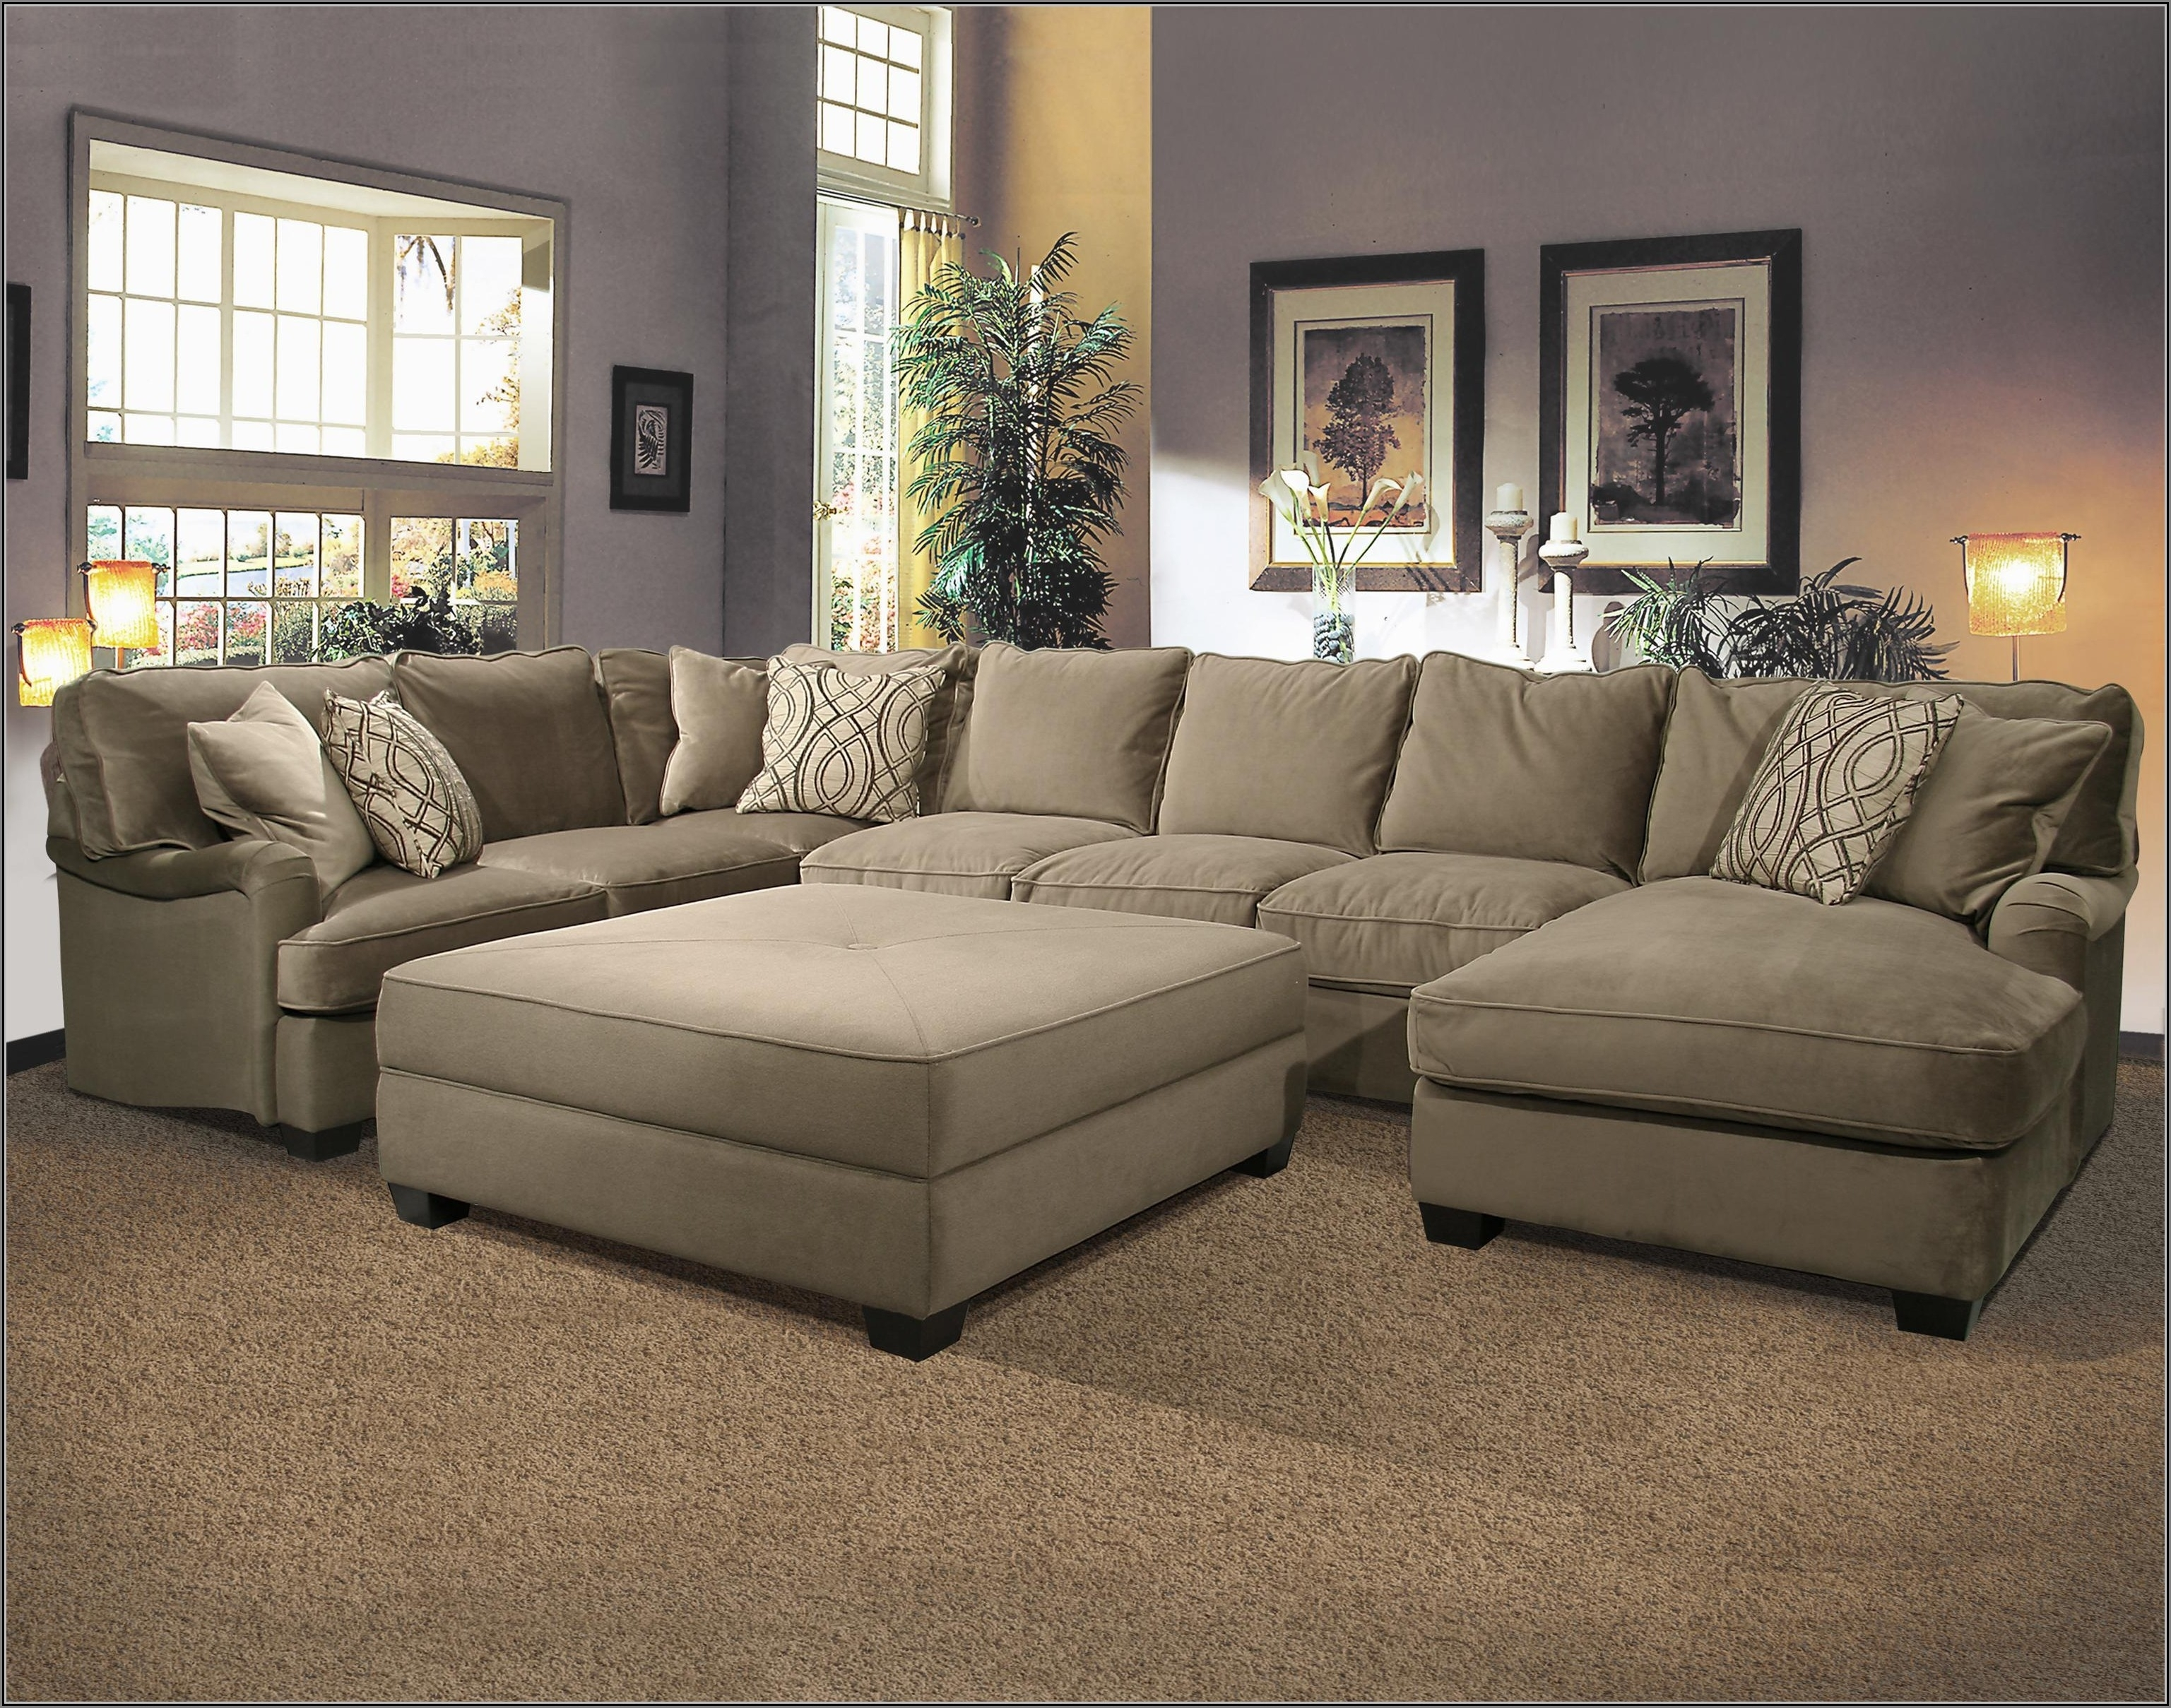 Good Sectional Sofa With Large Ottoman 42 For Are Sectional Sofas intended for Leather Sectionals With Ottoman (Image 8 of 15)